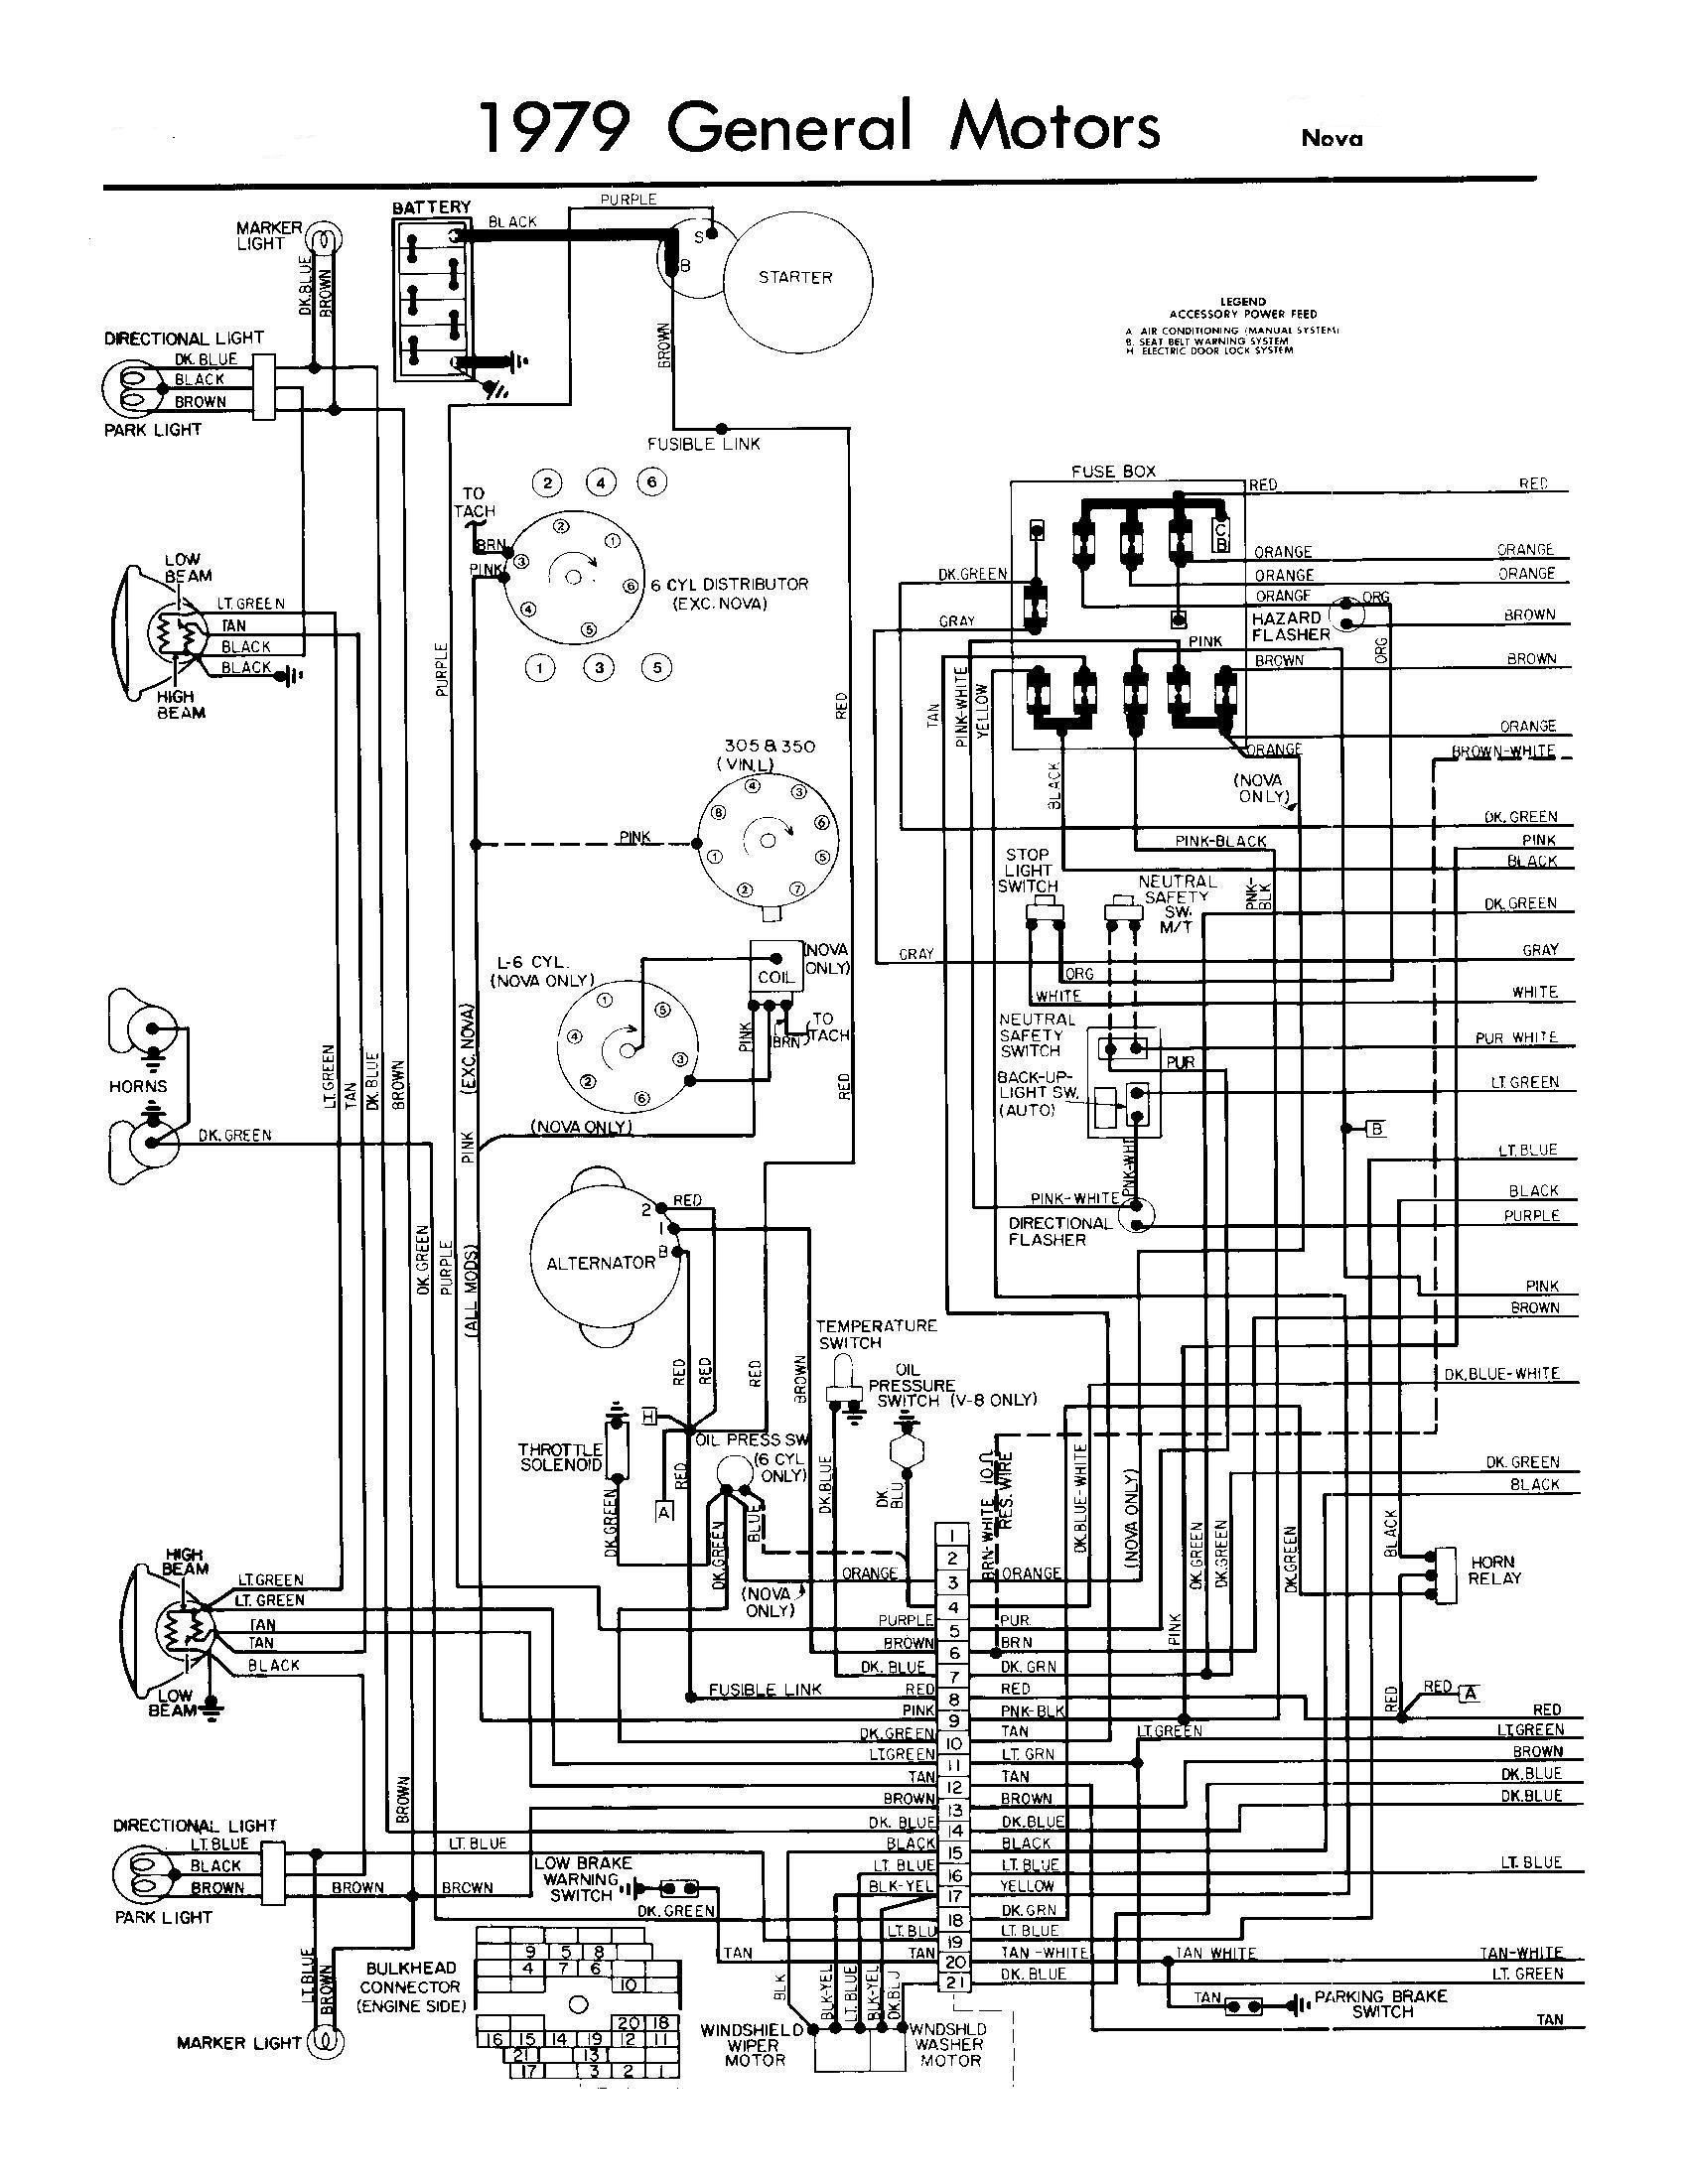 1988 Camaro Wiring Diagram - Wiring Online Diagram on 01 wrangler wiring diagram, 01 mustang wiring diagram, 01 dakota wiring diagram,